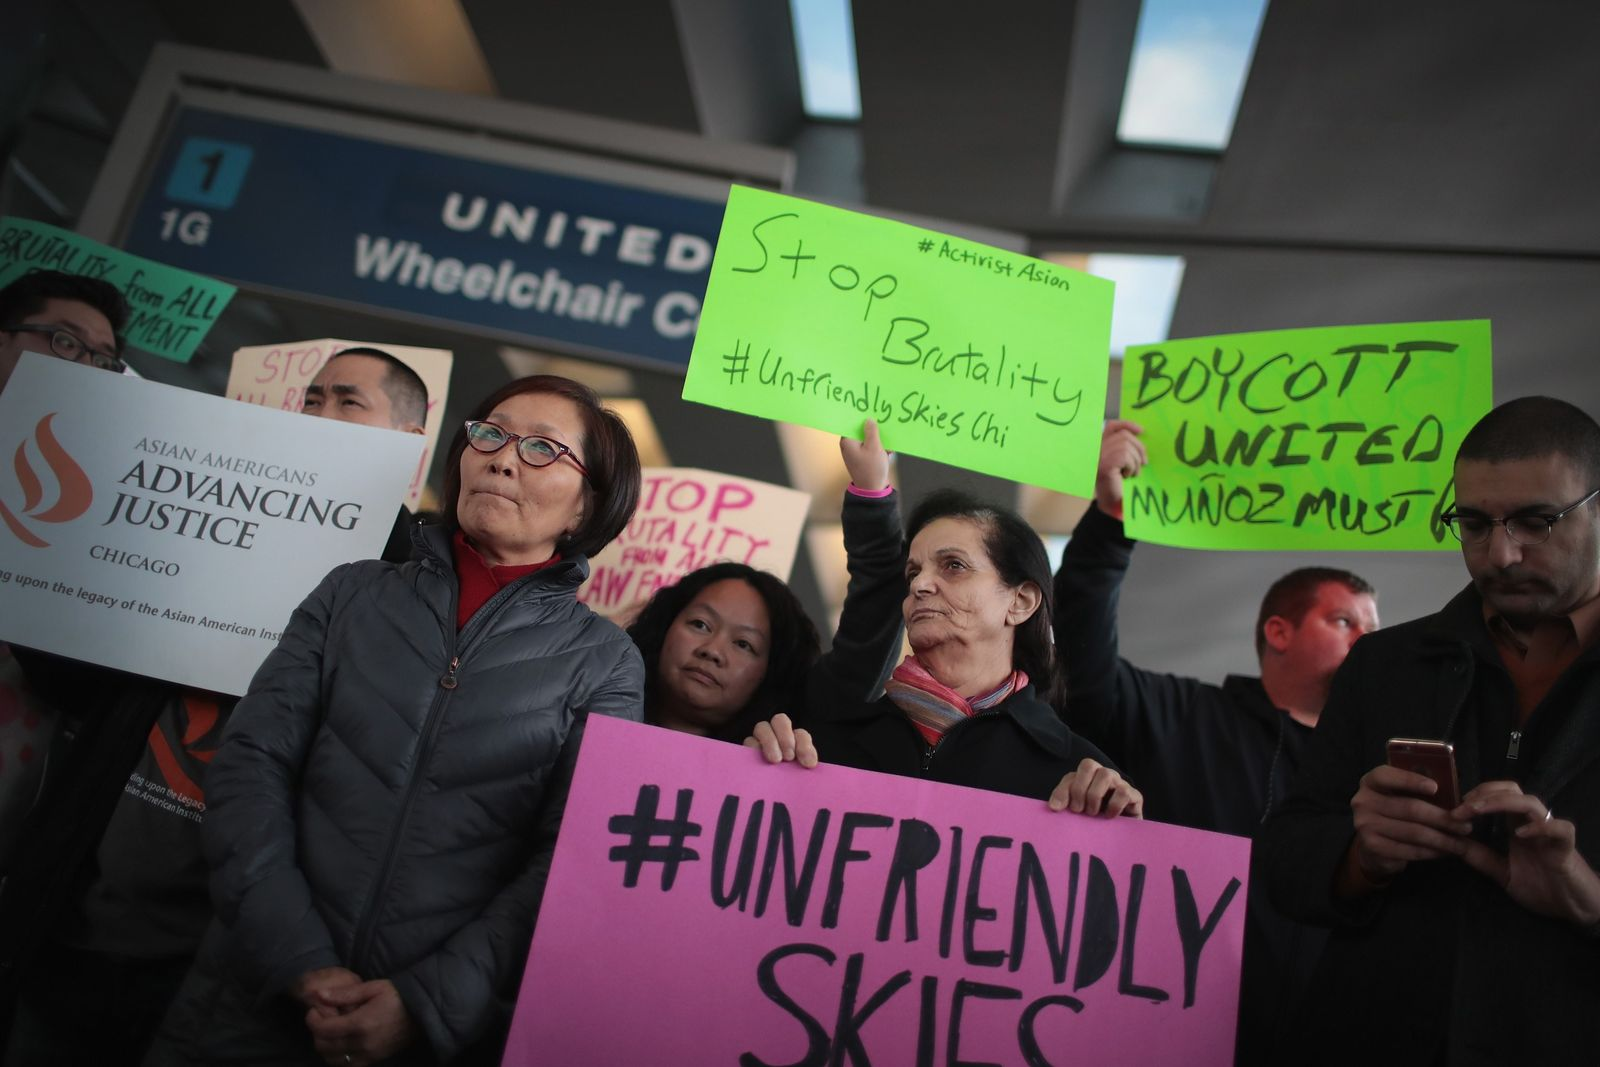 US-PROTEST-AT-OHARE-AIRPORTS-UNITED-TERMINAL-OVER-COMPANYS-FO